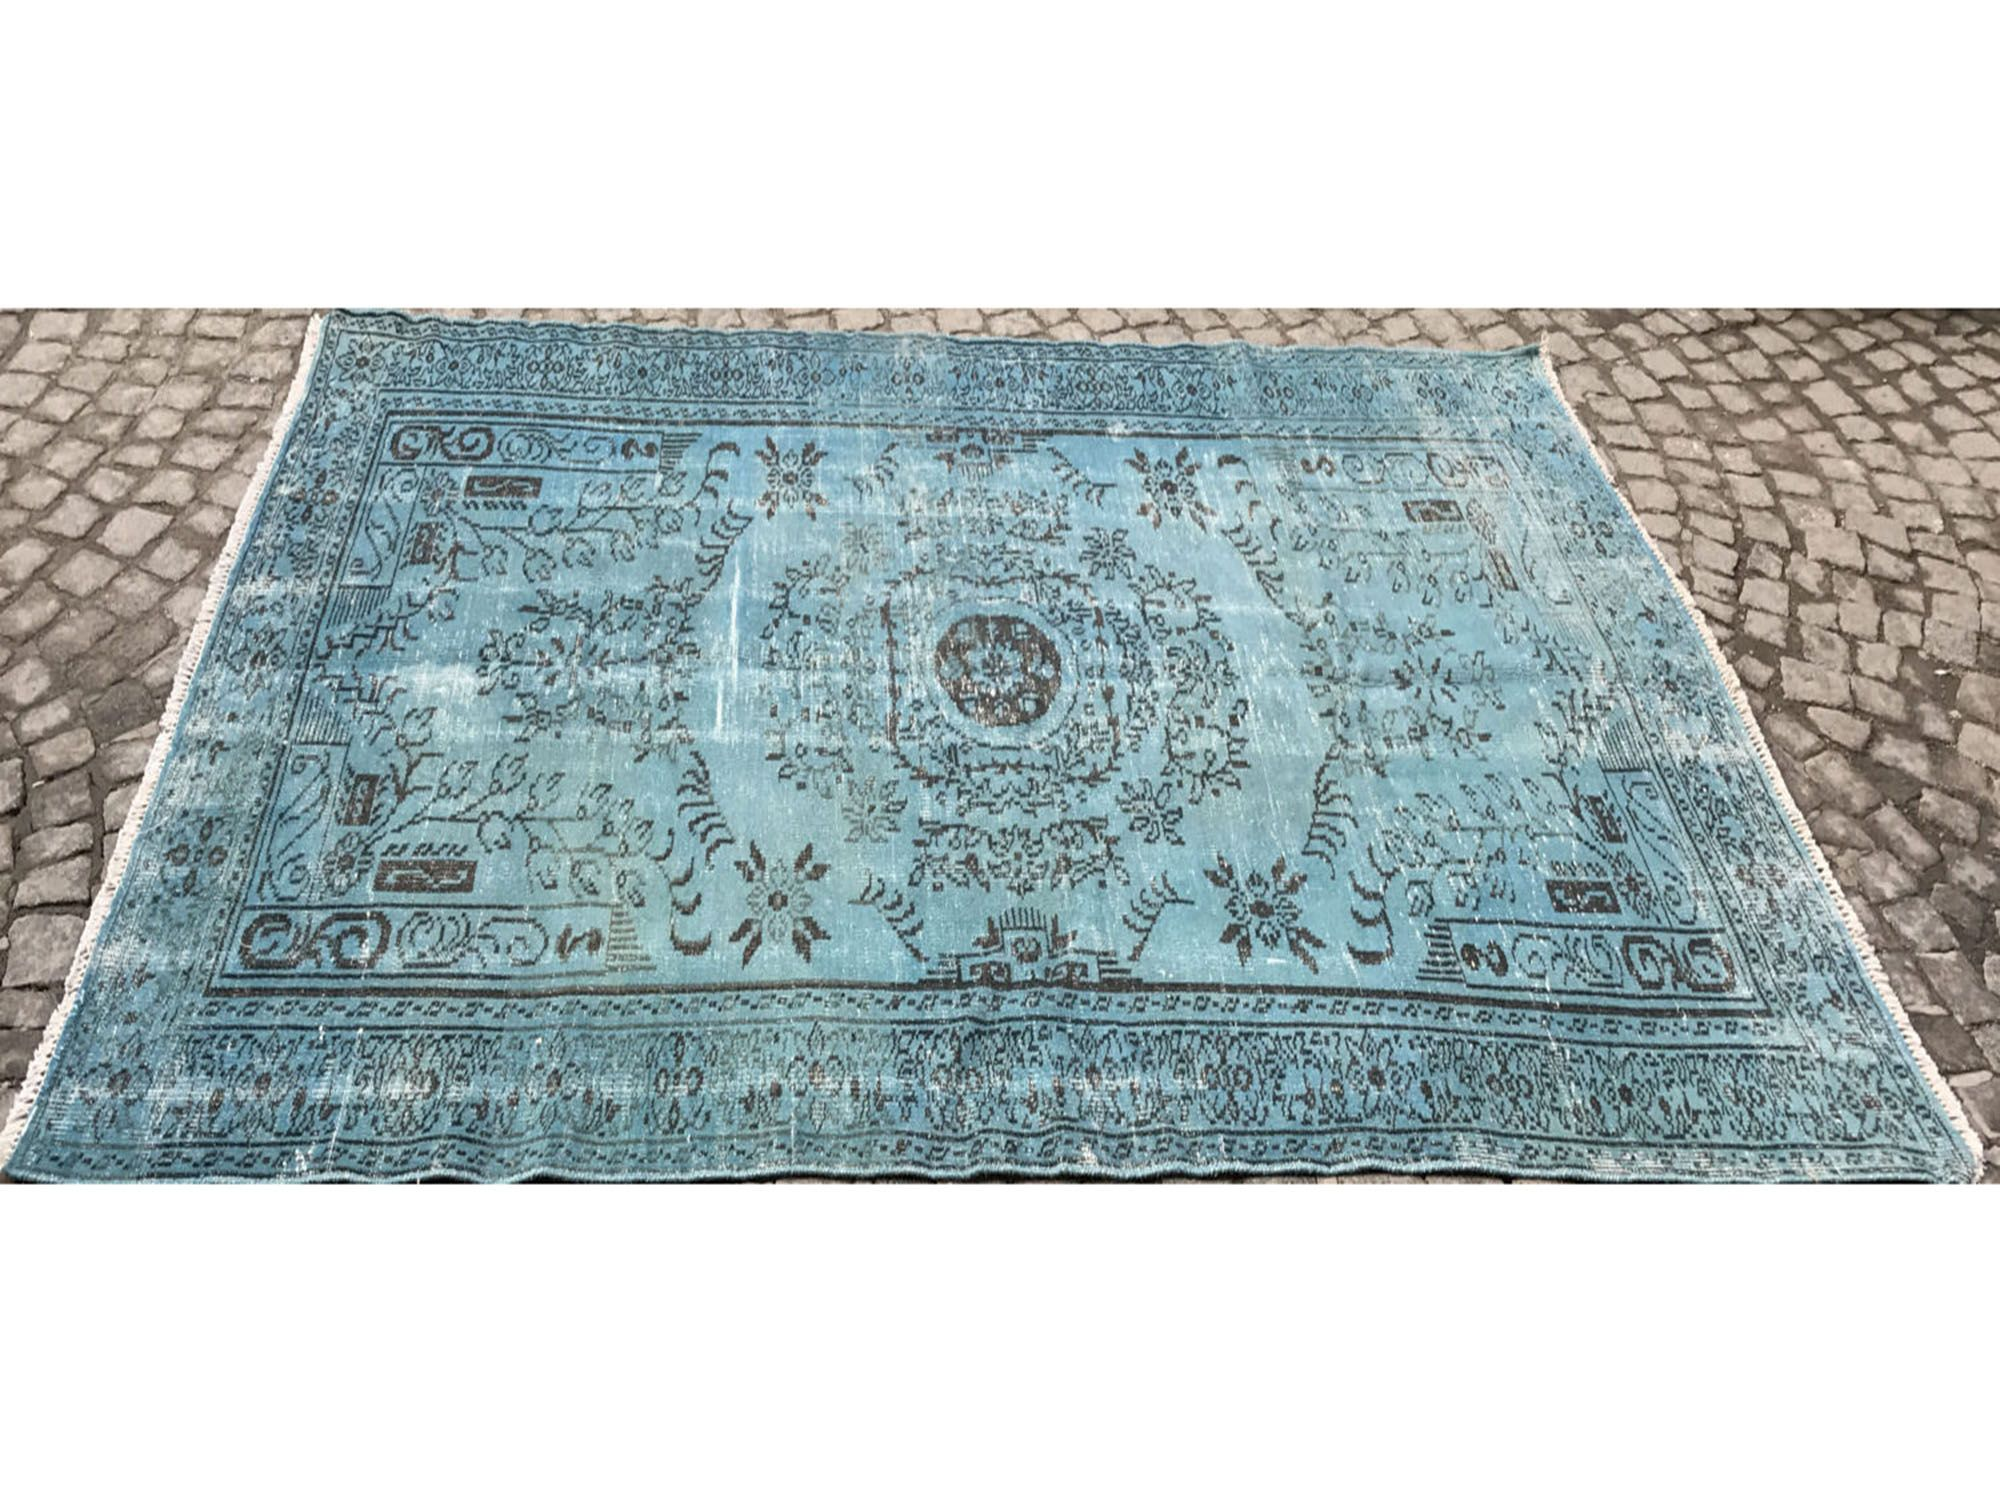 Teppich Blau Blau Teppich Teppich Rugs Home Decor Und Decor